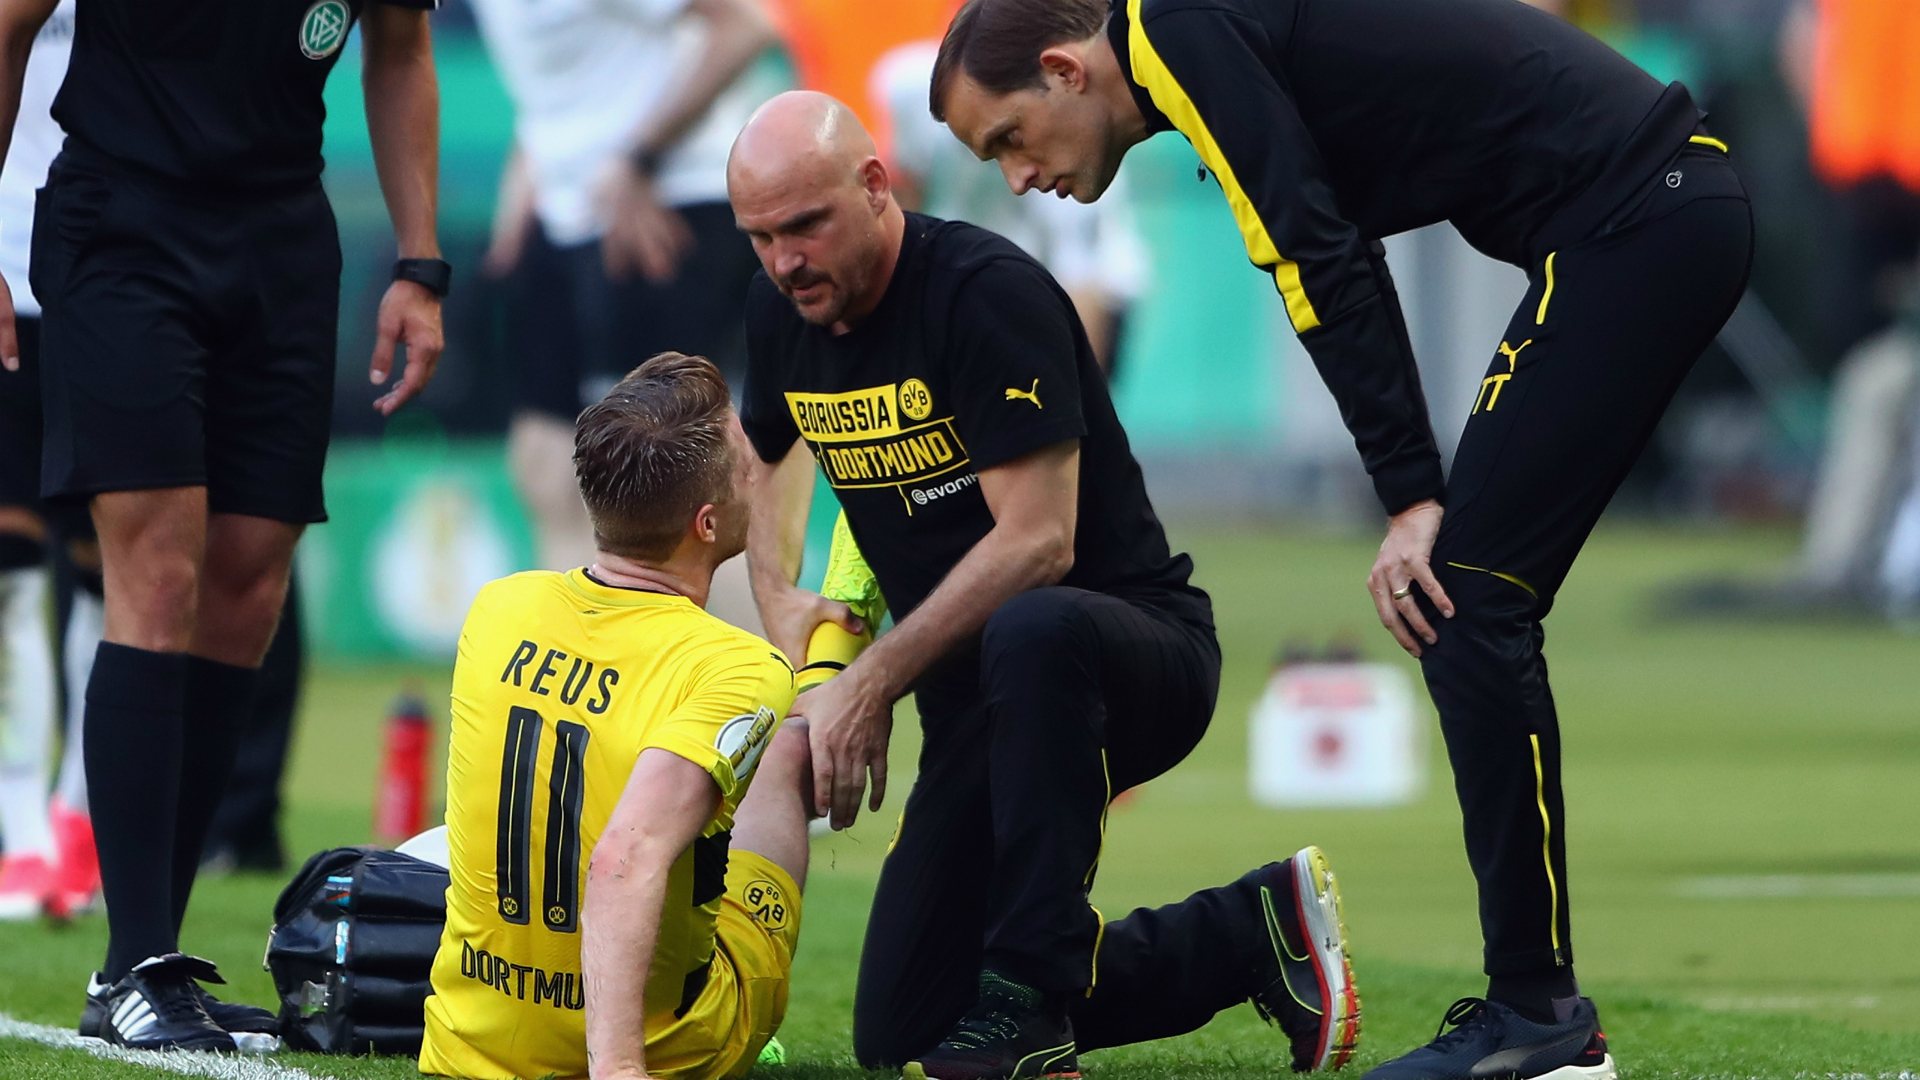 From celebration to demise: The end of Thomas Tuchel